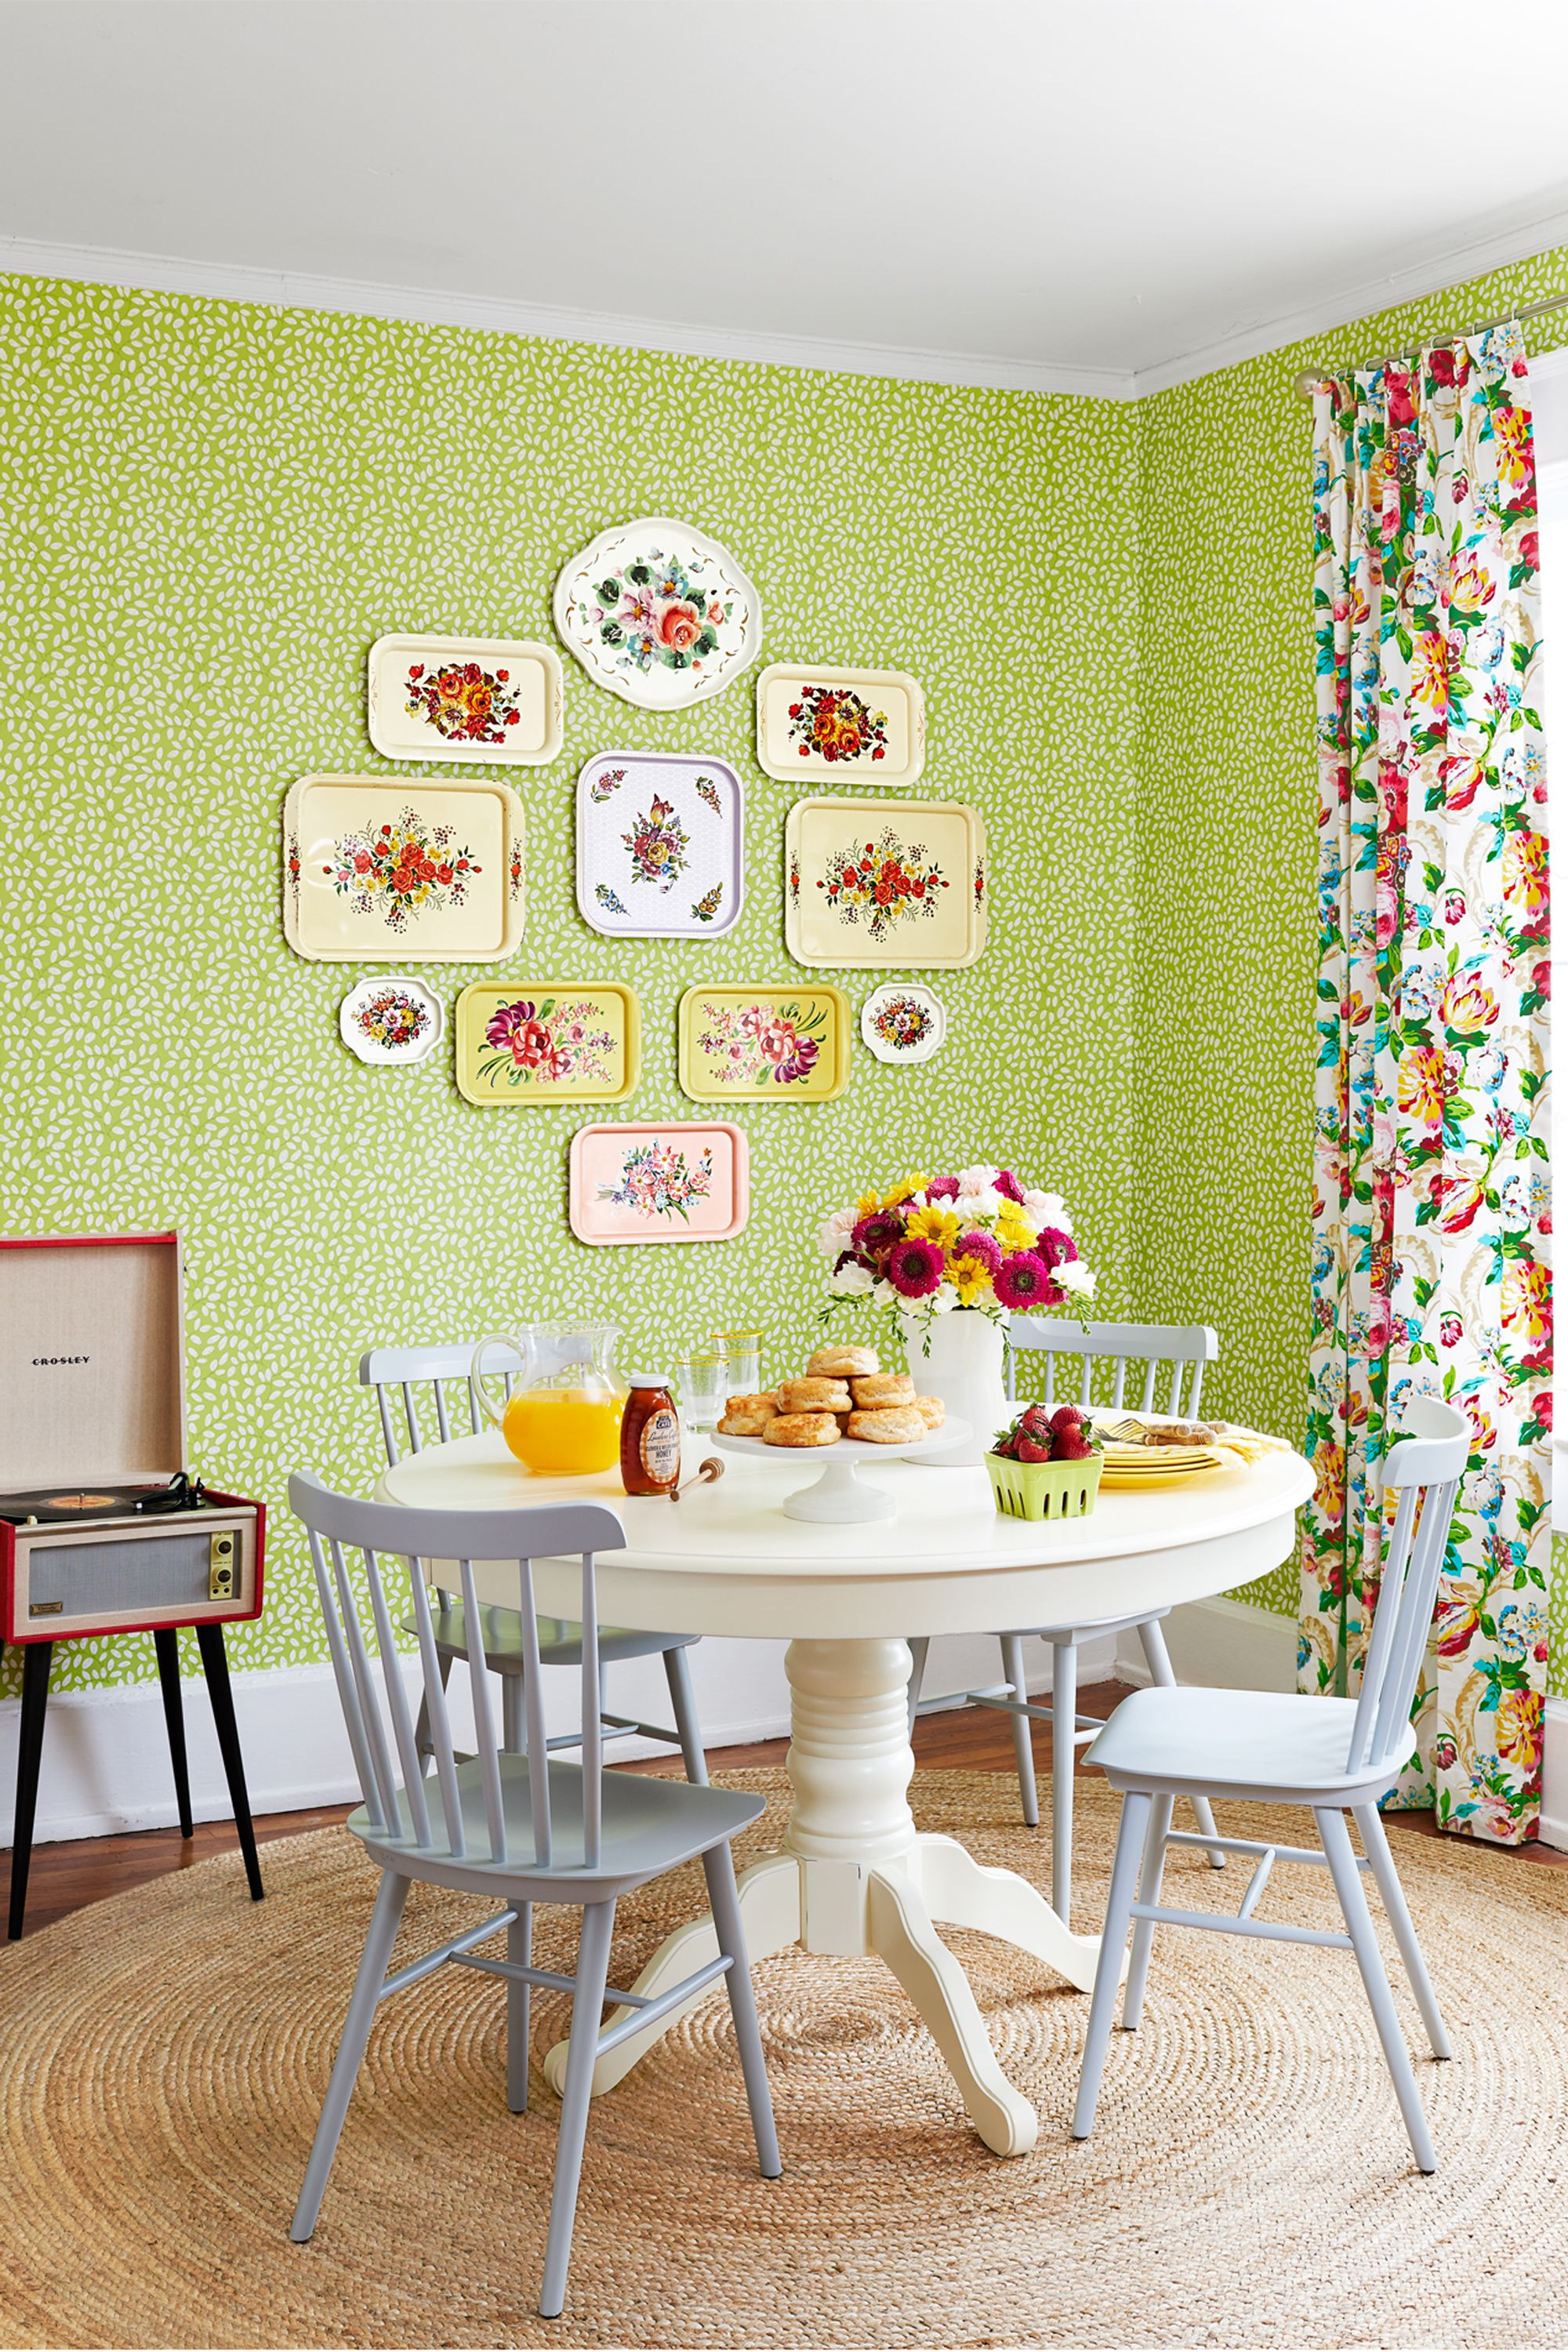 85 Inspired Ideas for Dining Room Decorating | Metal trays, Vintage ...